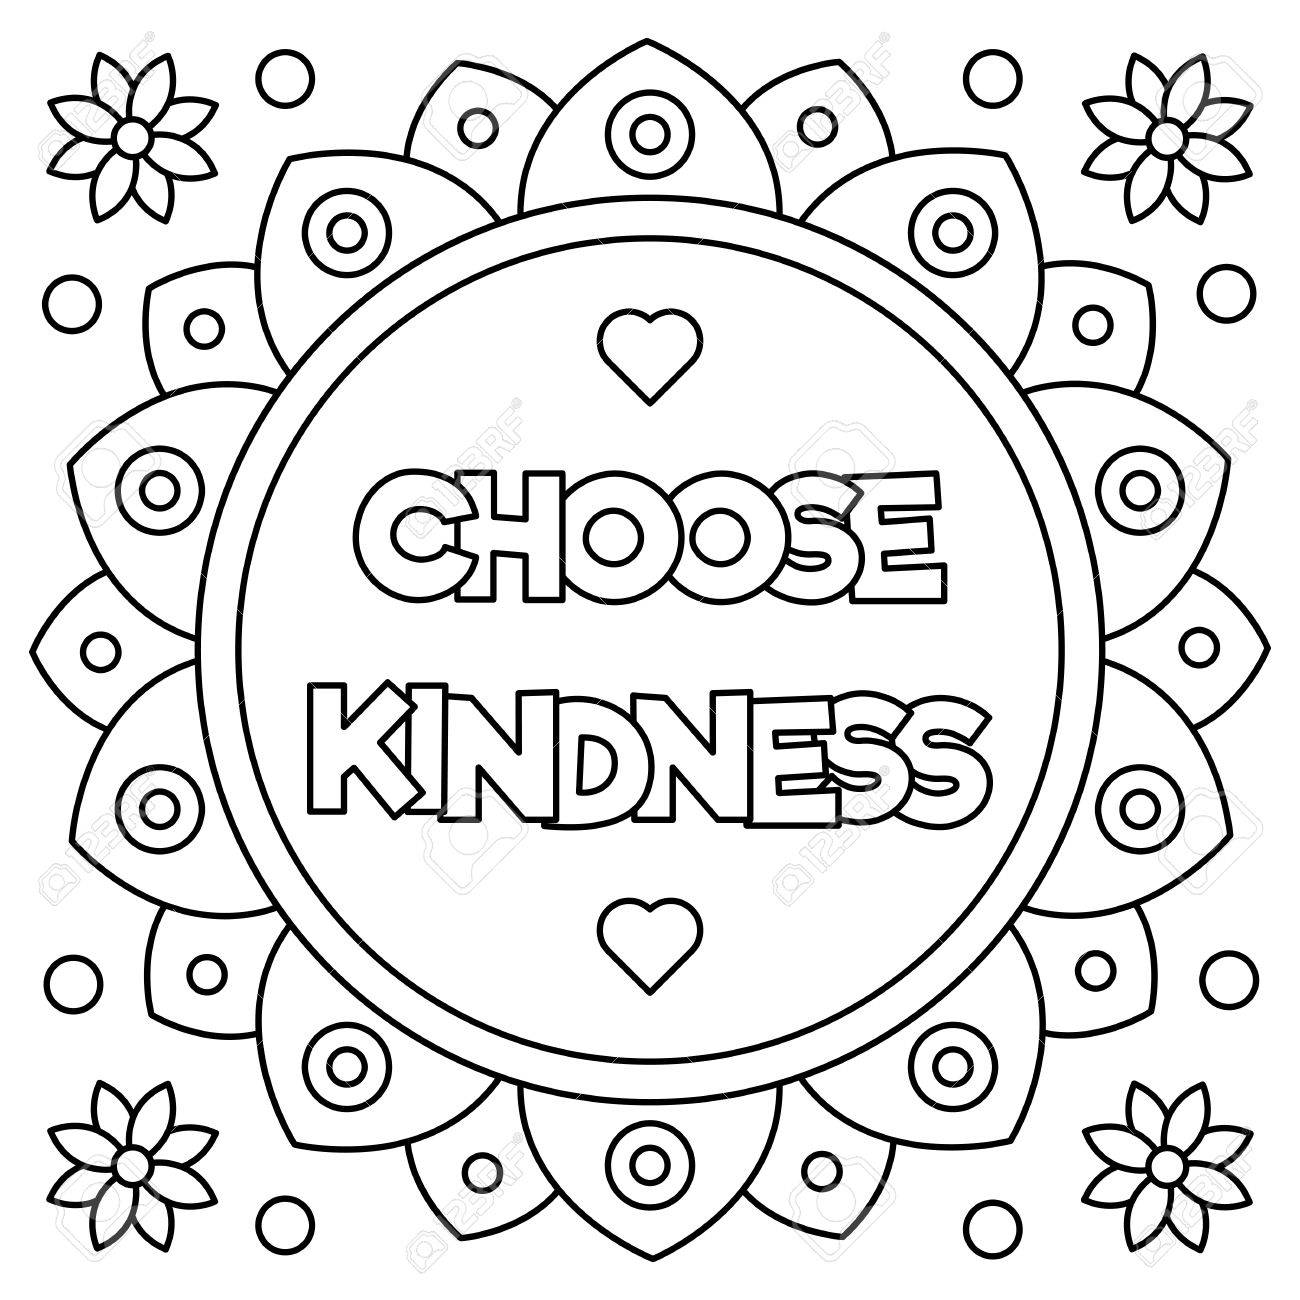 Choose kindness. Coloring page. Vector illustration. - 83875548